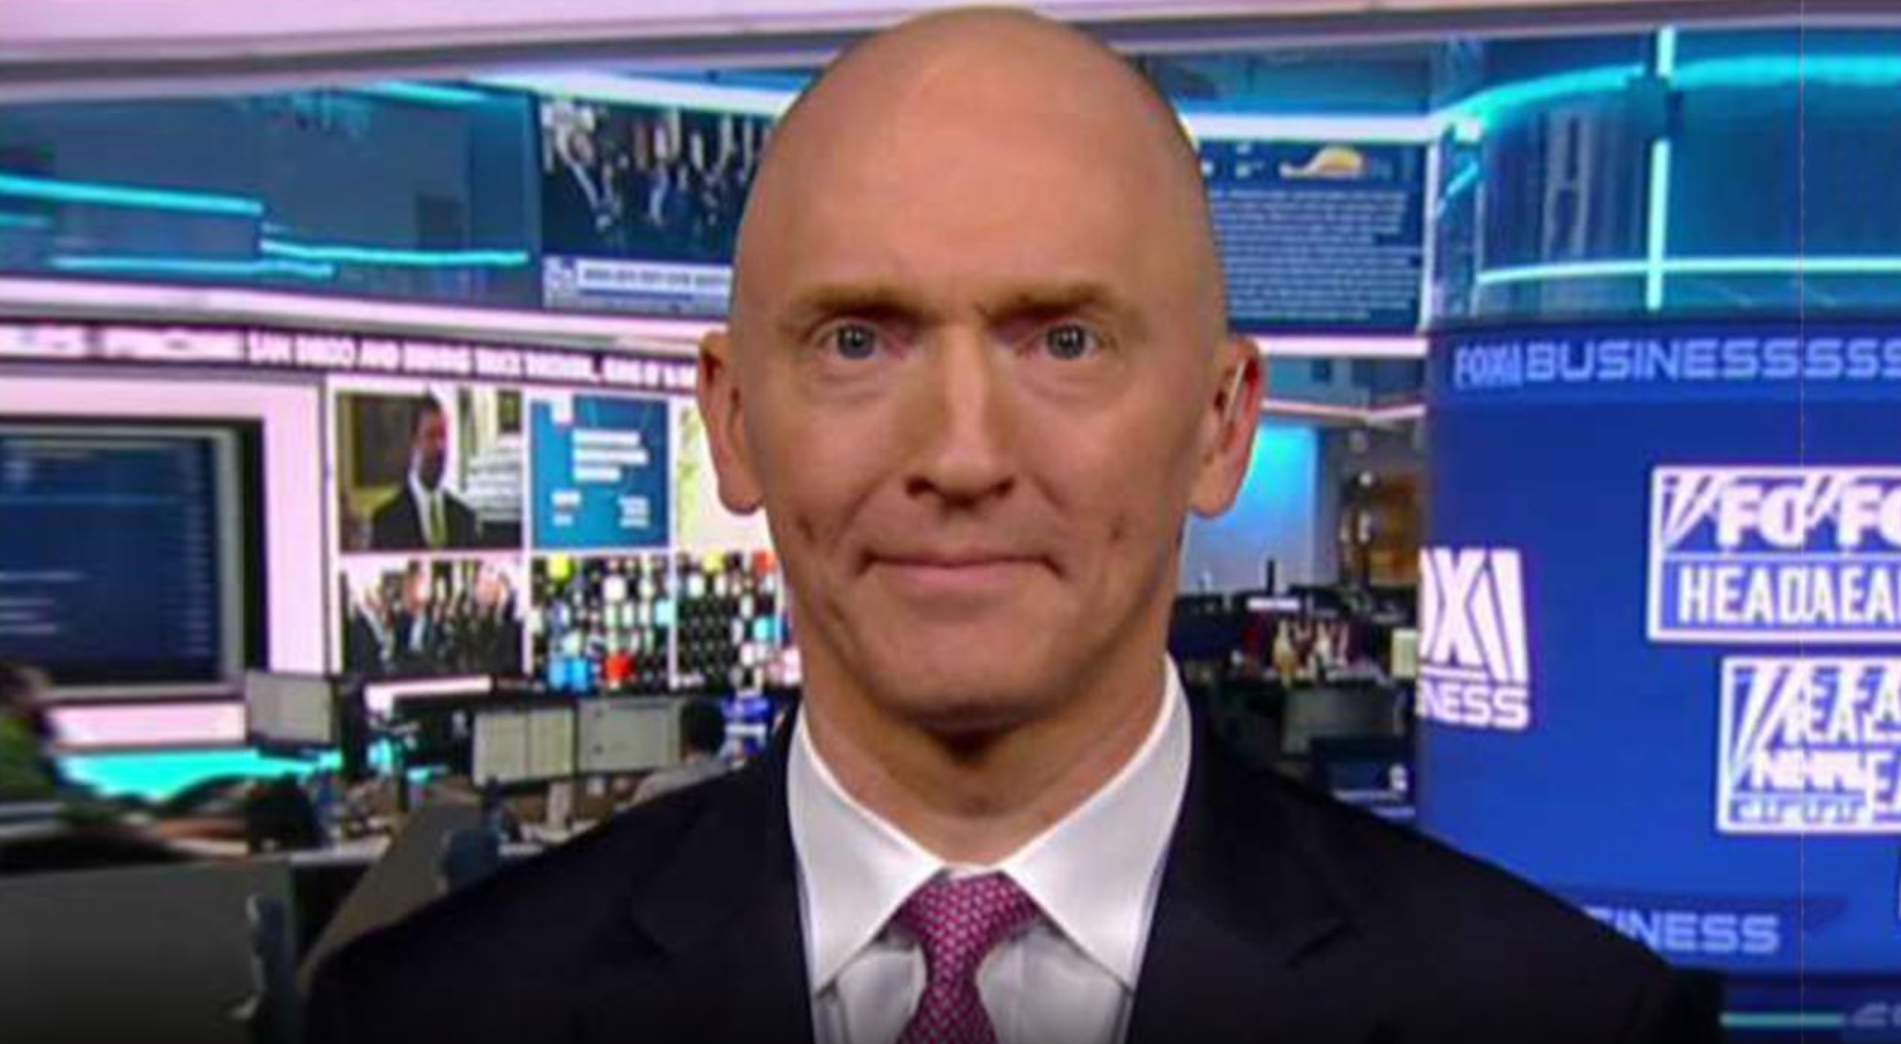 Westlake Legal Group Screen-Shot-2019-11-22-at-11.48.16-PM Carter Page reacts to DOJ inspector's report: 'There's been no real action' to address FISA abuse Joshua Nelson fox-news/tech/topics/fbi fox-news/shows/ingraham-angle fox-news/news-events/russia-investigation fox-news/media/fox-news-flash fox news fnc/media fnc dd5f6190-322f-5e76-90bf-bd5bbbc20e58 article